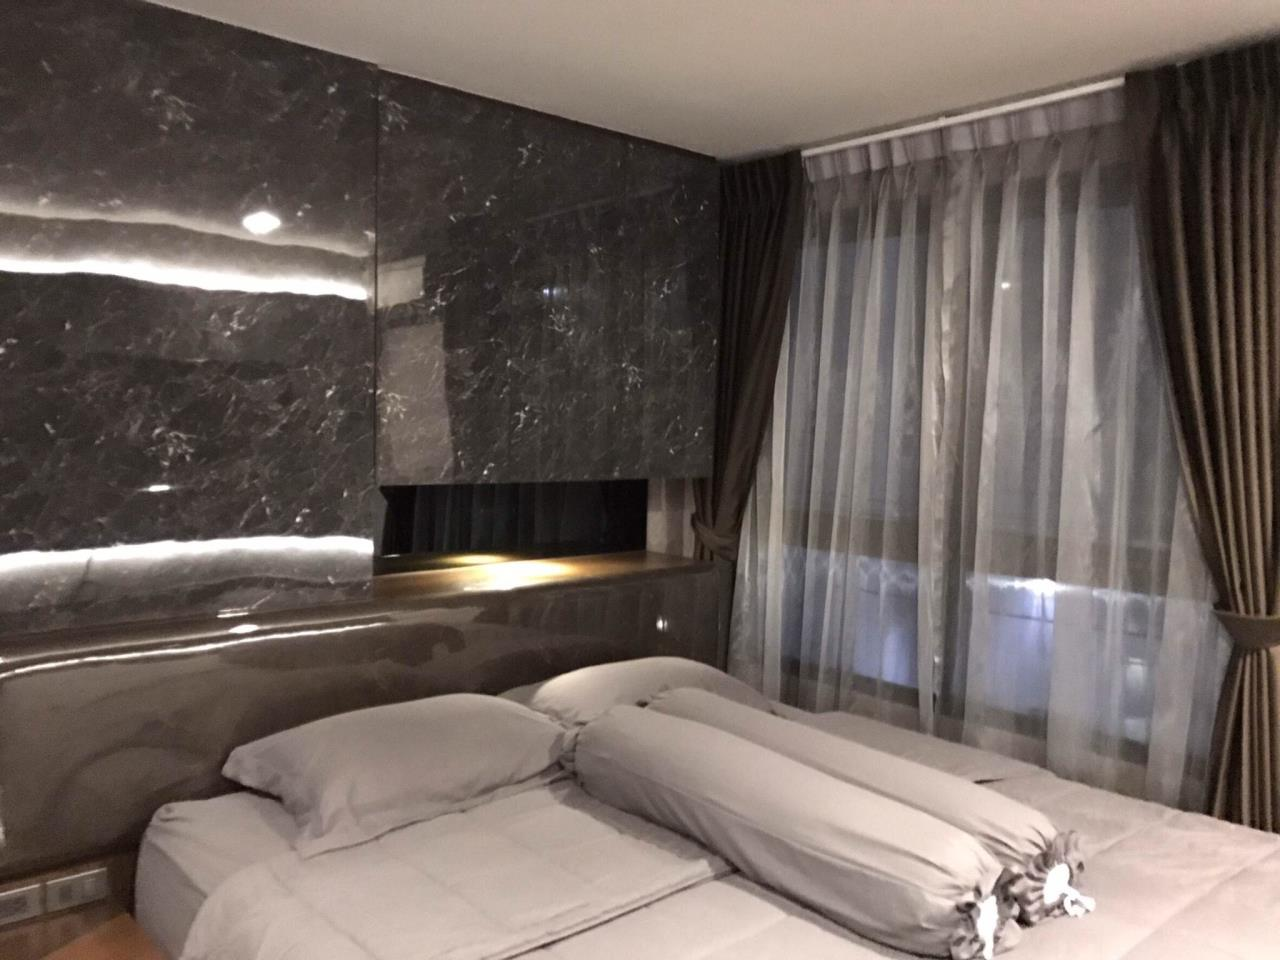 RE/MAX All Star Realty Agency's Mirage Sukhumvit one bed condo for sale/rent (BTS Asoke / MRT Sukhumvit) 10